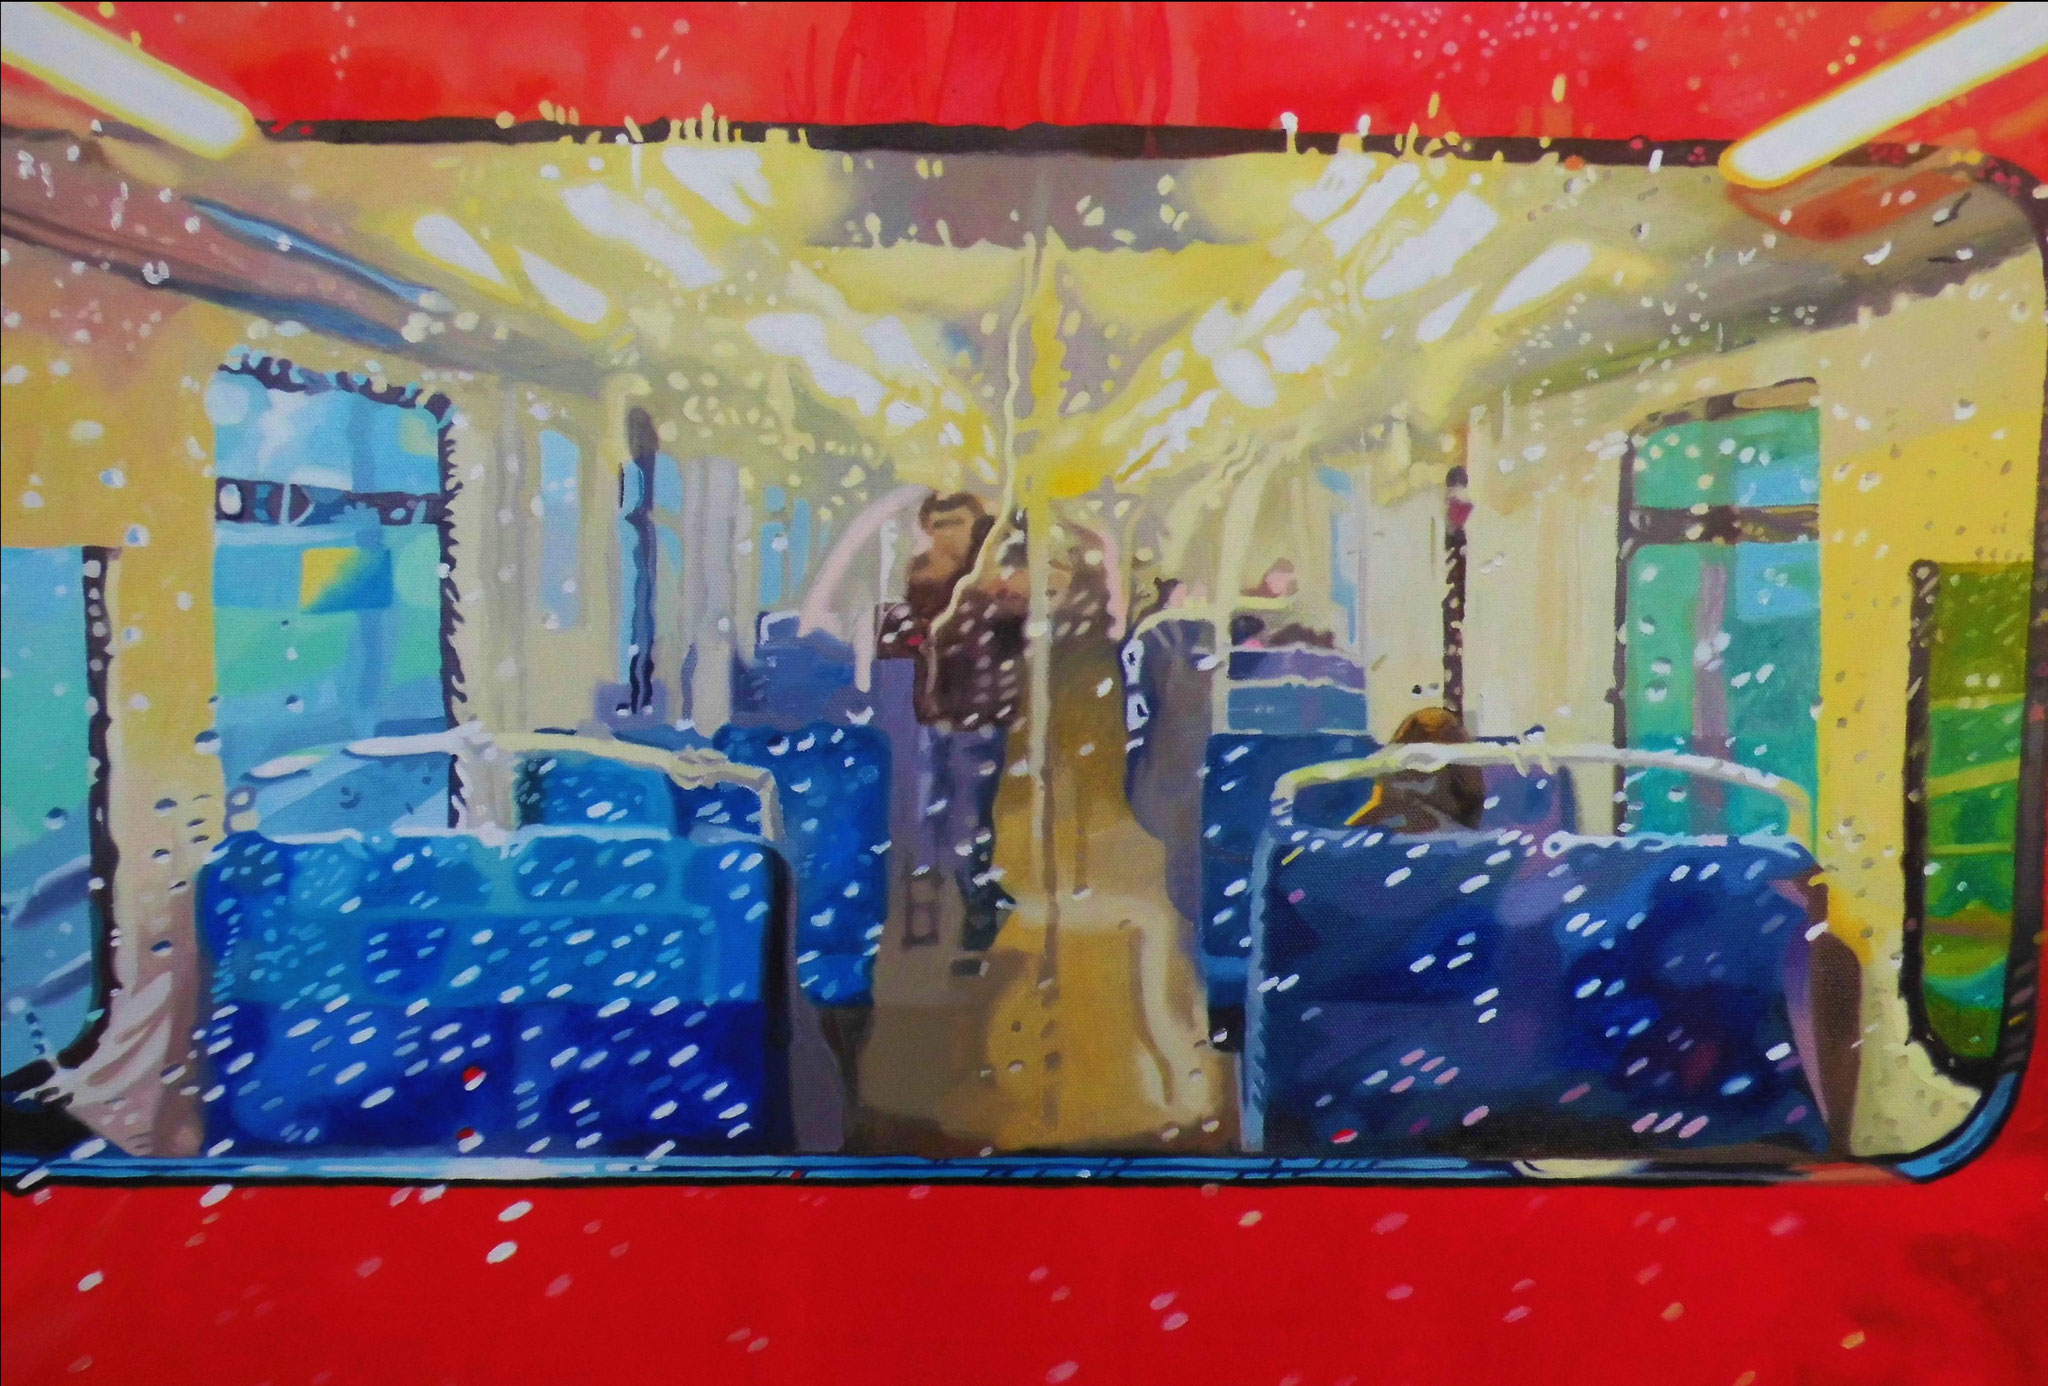 S-Bahn, Oil on Canvas, 50 x 70 cm